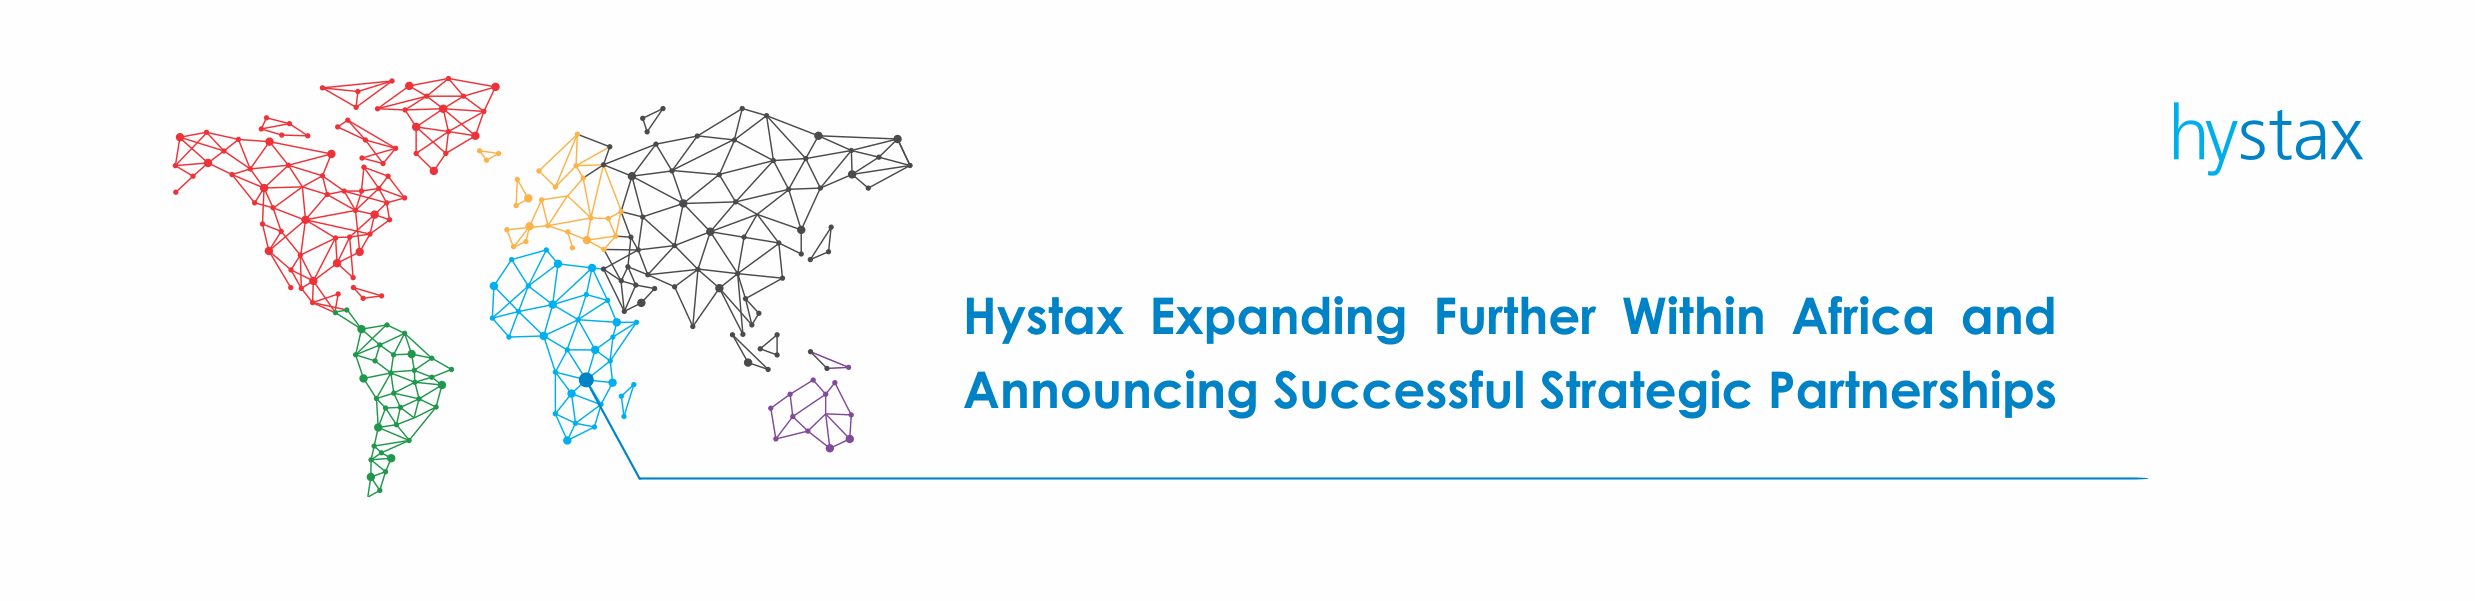 Hystax Expanding Within Africa